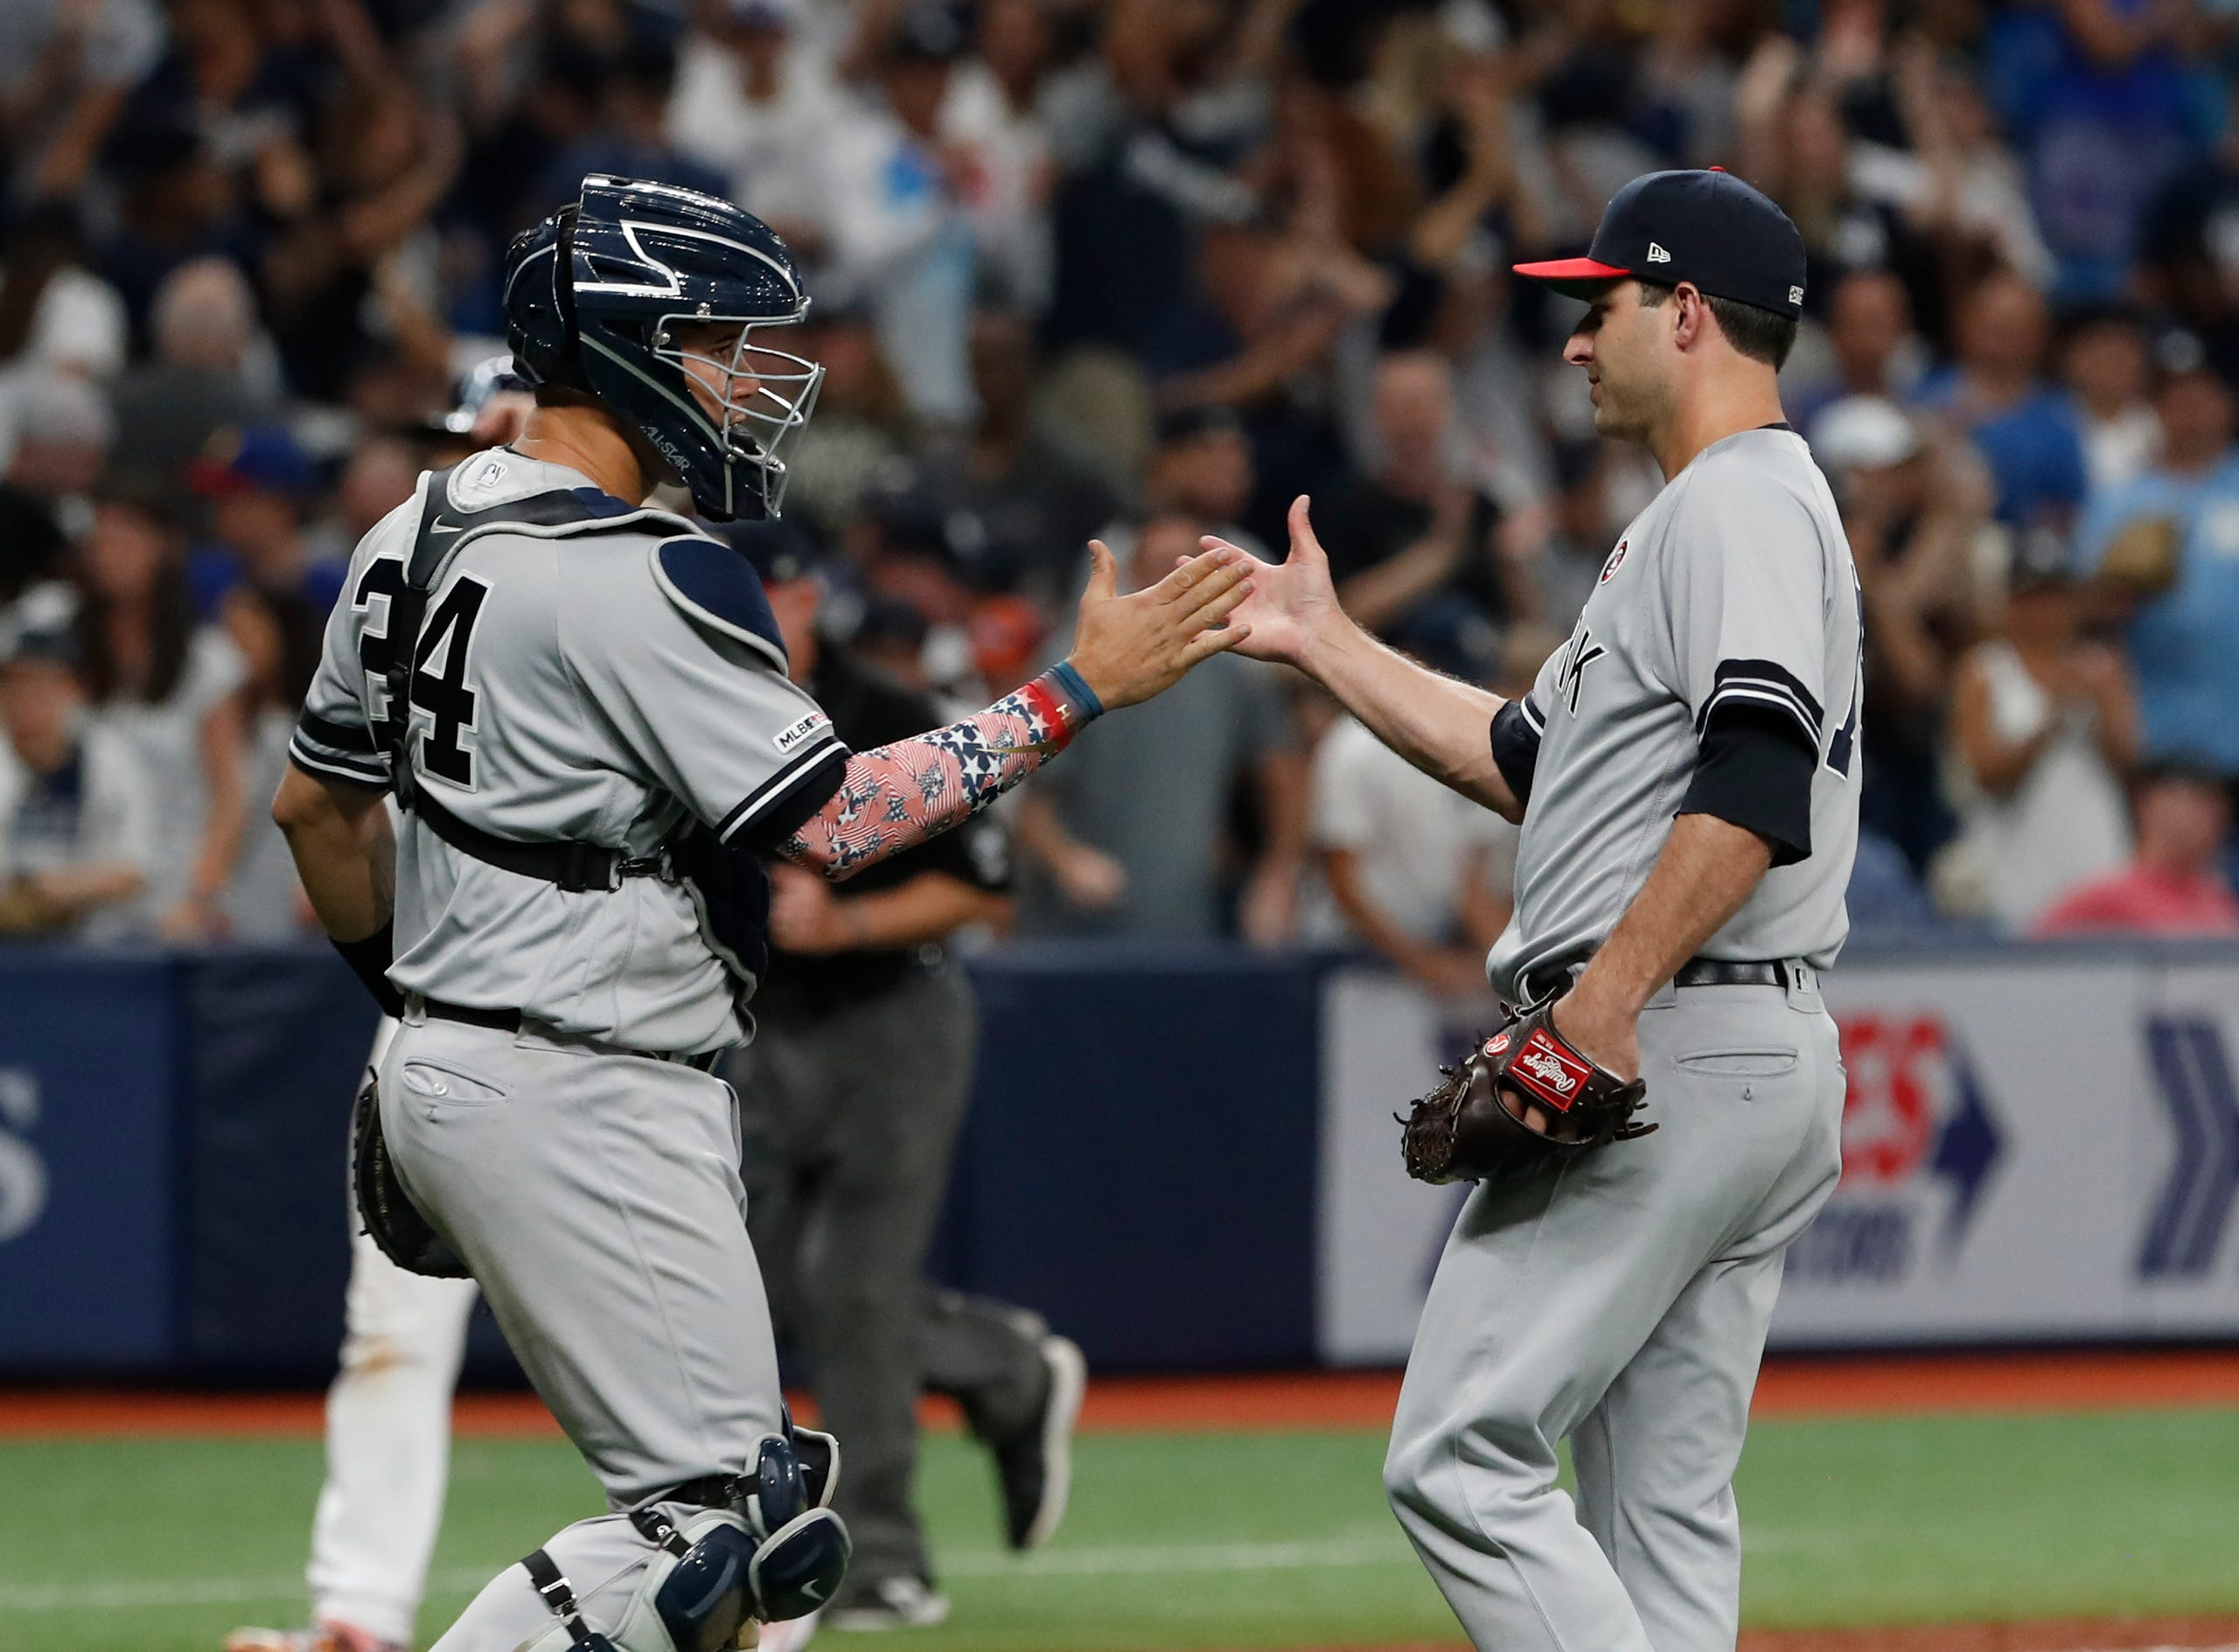 premium selection 042a9 7c14e New York Yankees take down Tampa Bay Rays in 10 innings